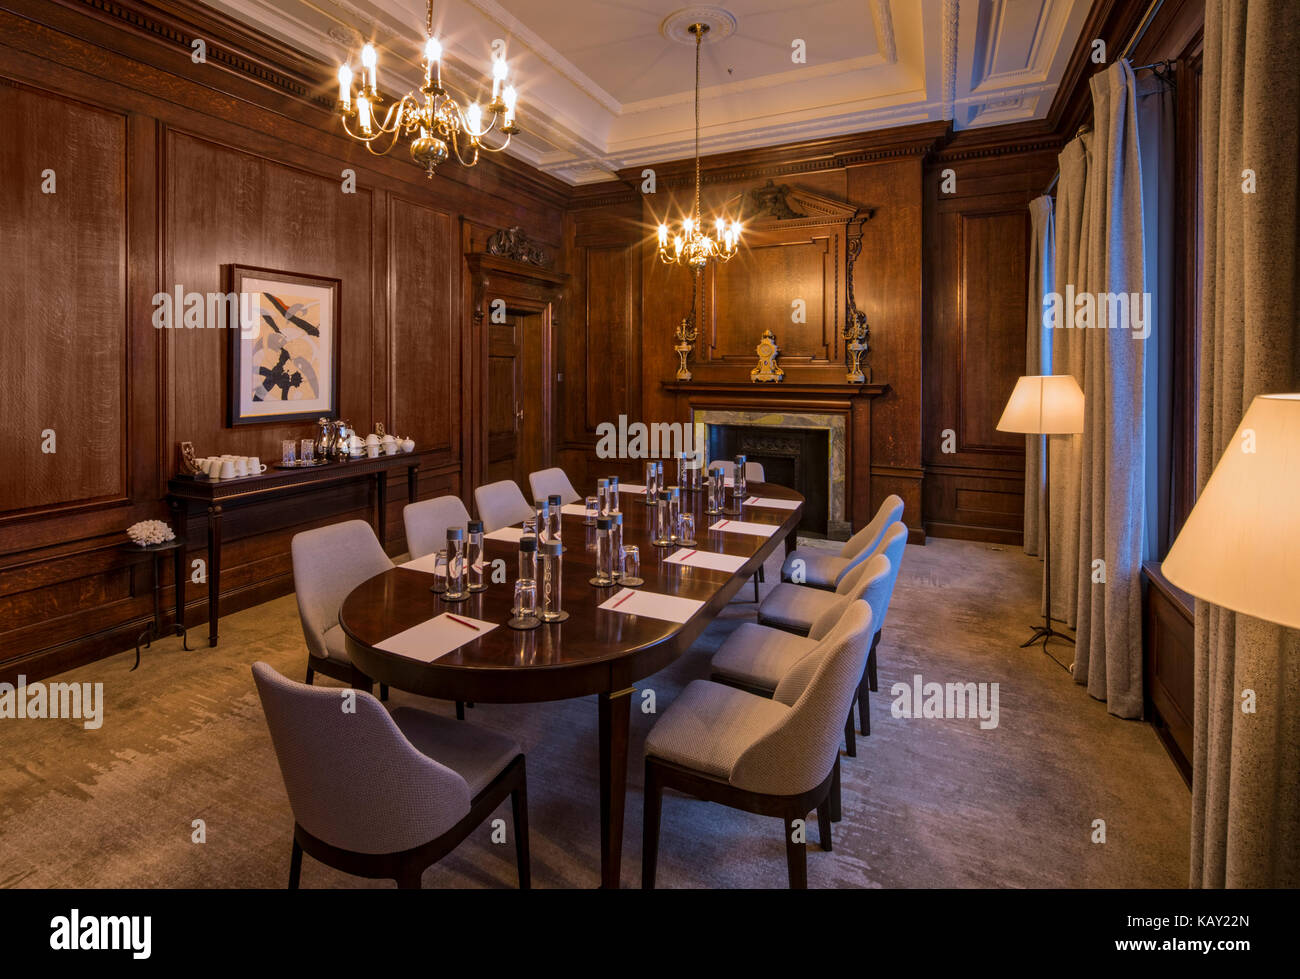 Wonderful racv members dining room photos exterior ideas 3d gaml surprising members dining room house of commons pictures image dzzzfo